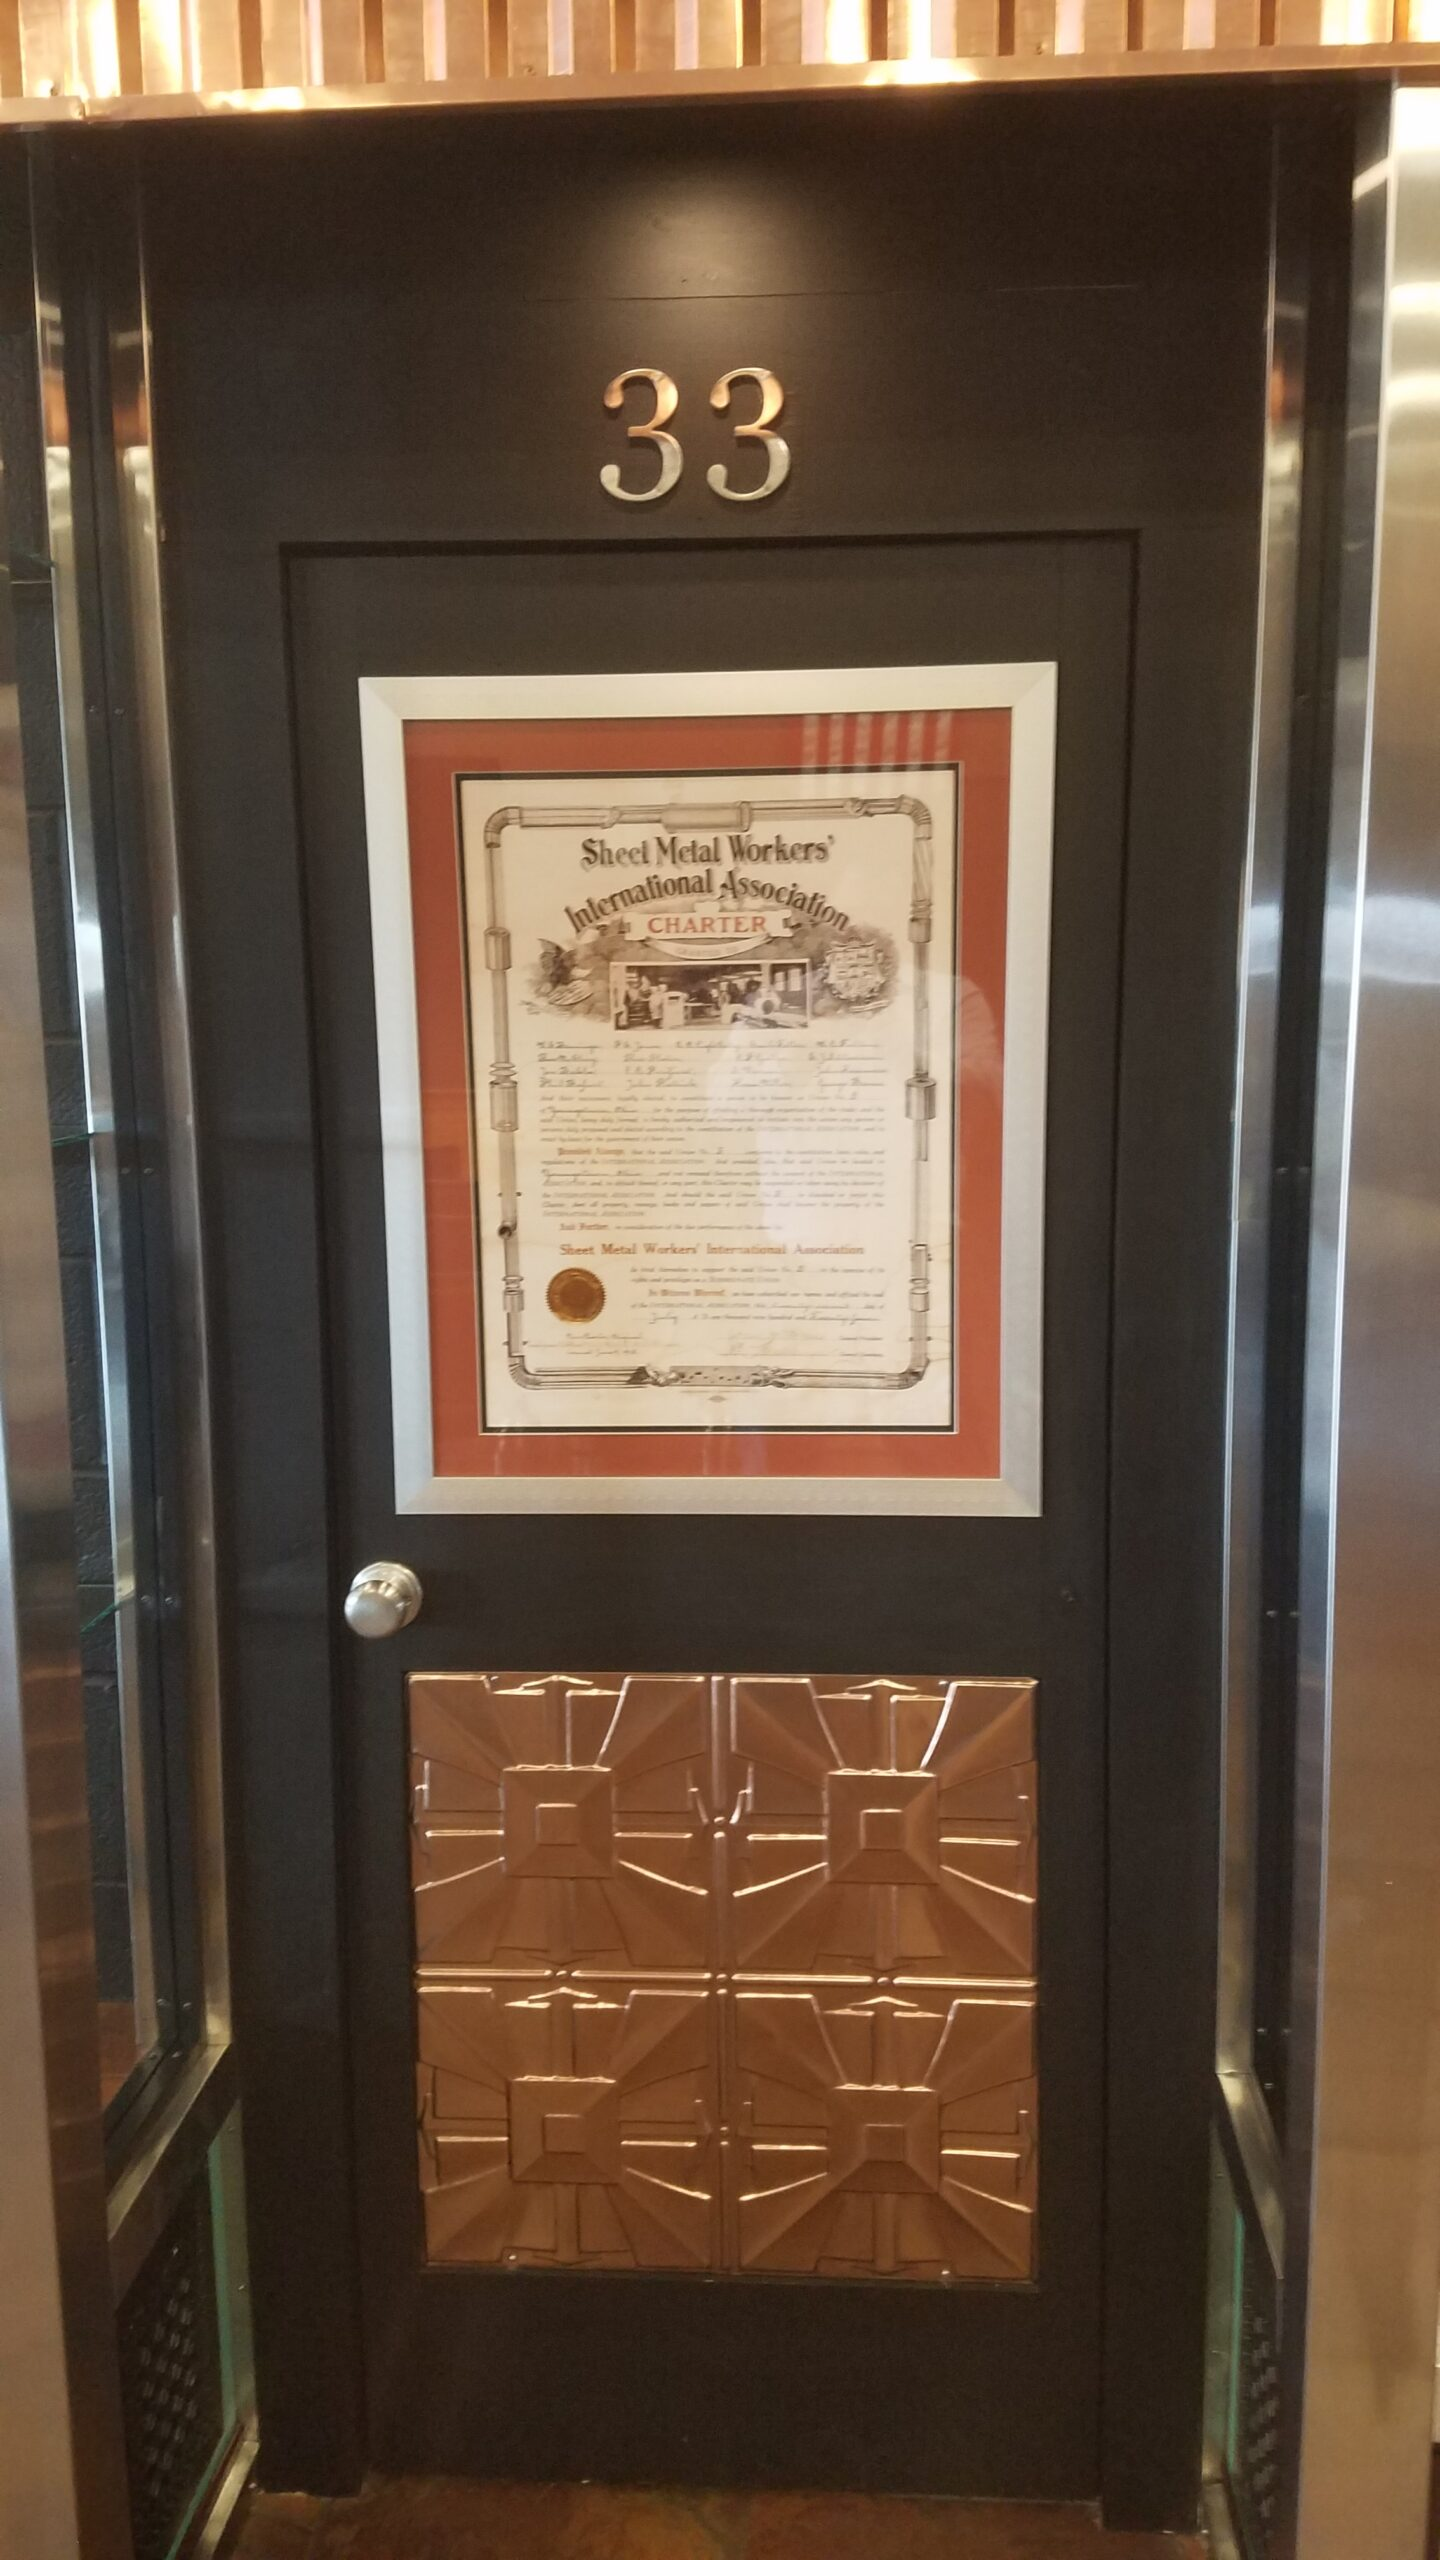 Showcase's Door Showing Youngstown's Original Charter from 1888.